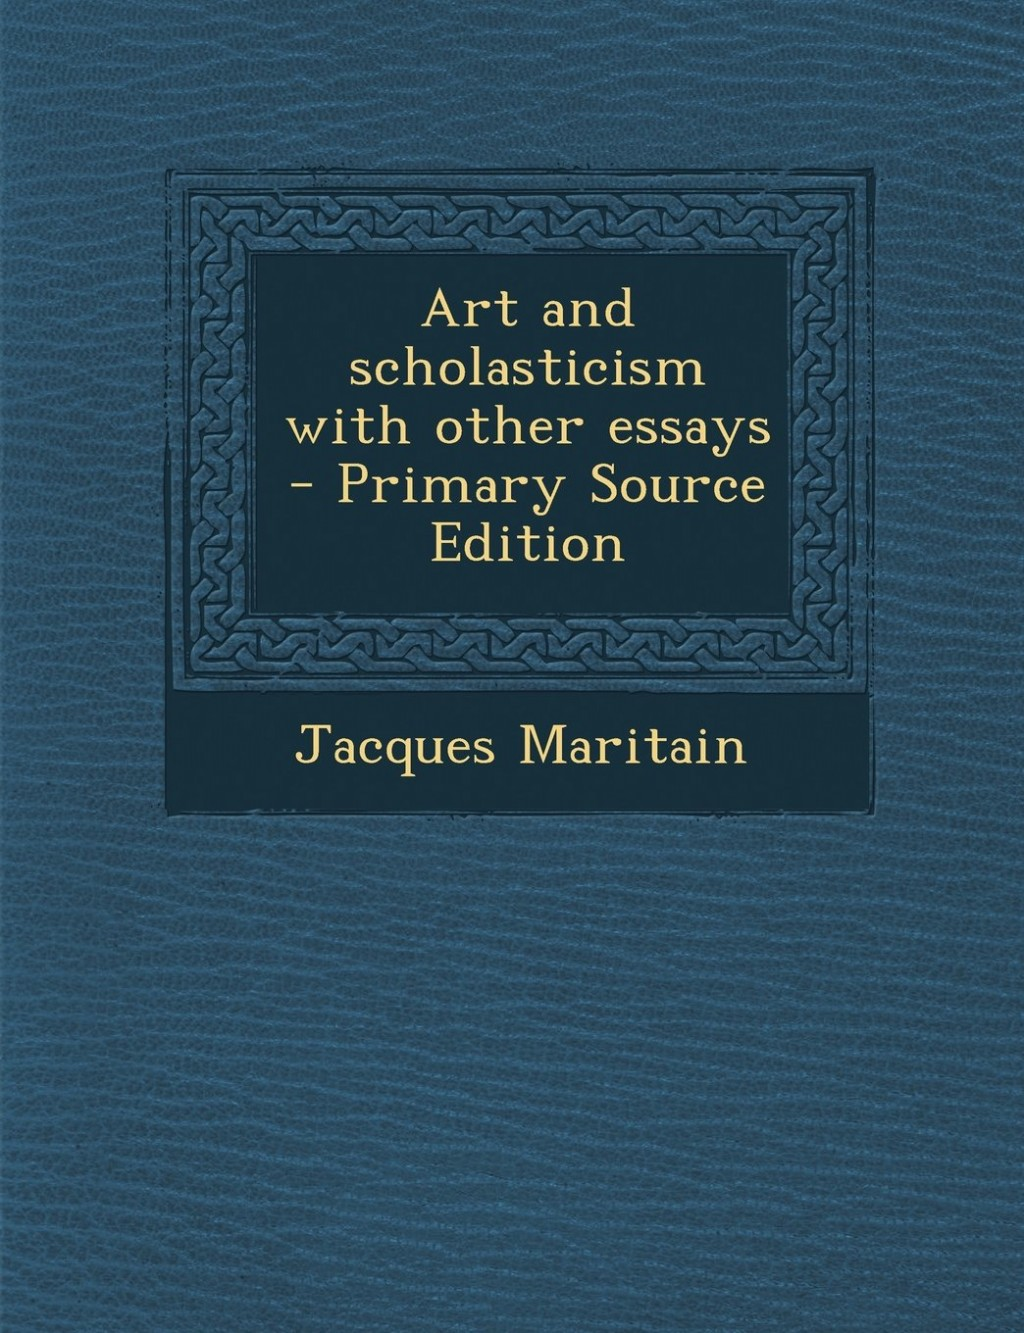 004 Art And Scholasticism With Other Essays Essay Example Impressive Large